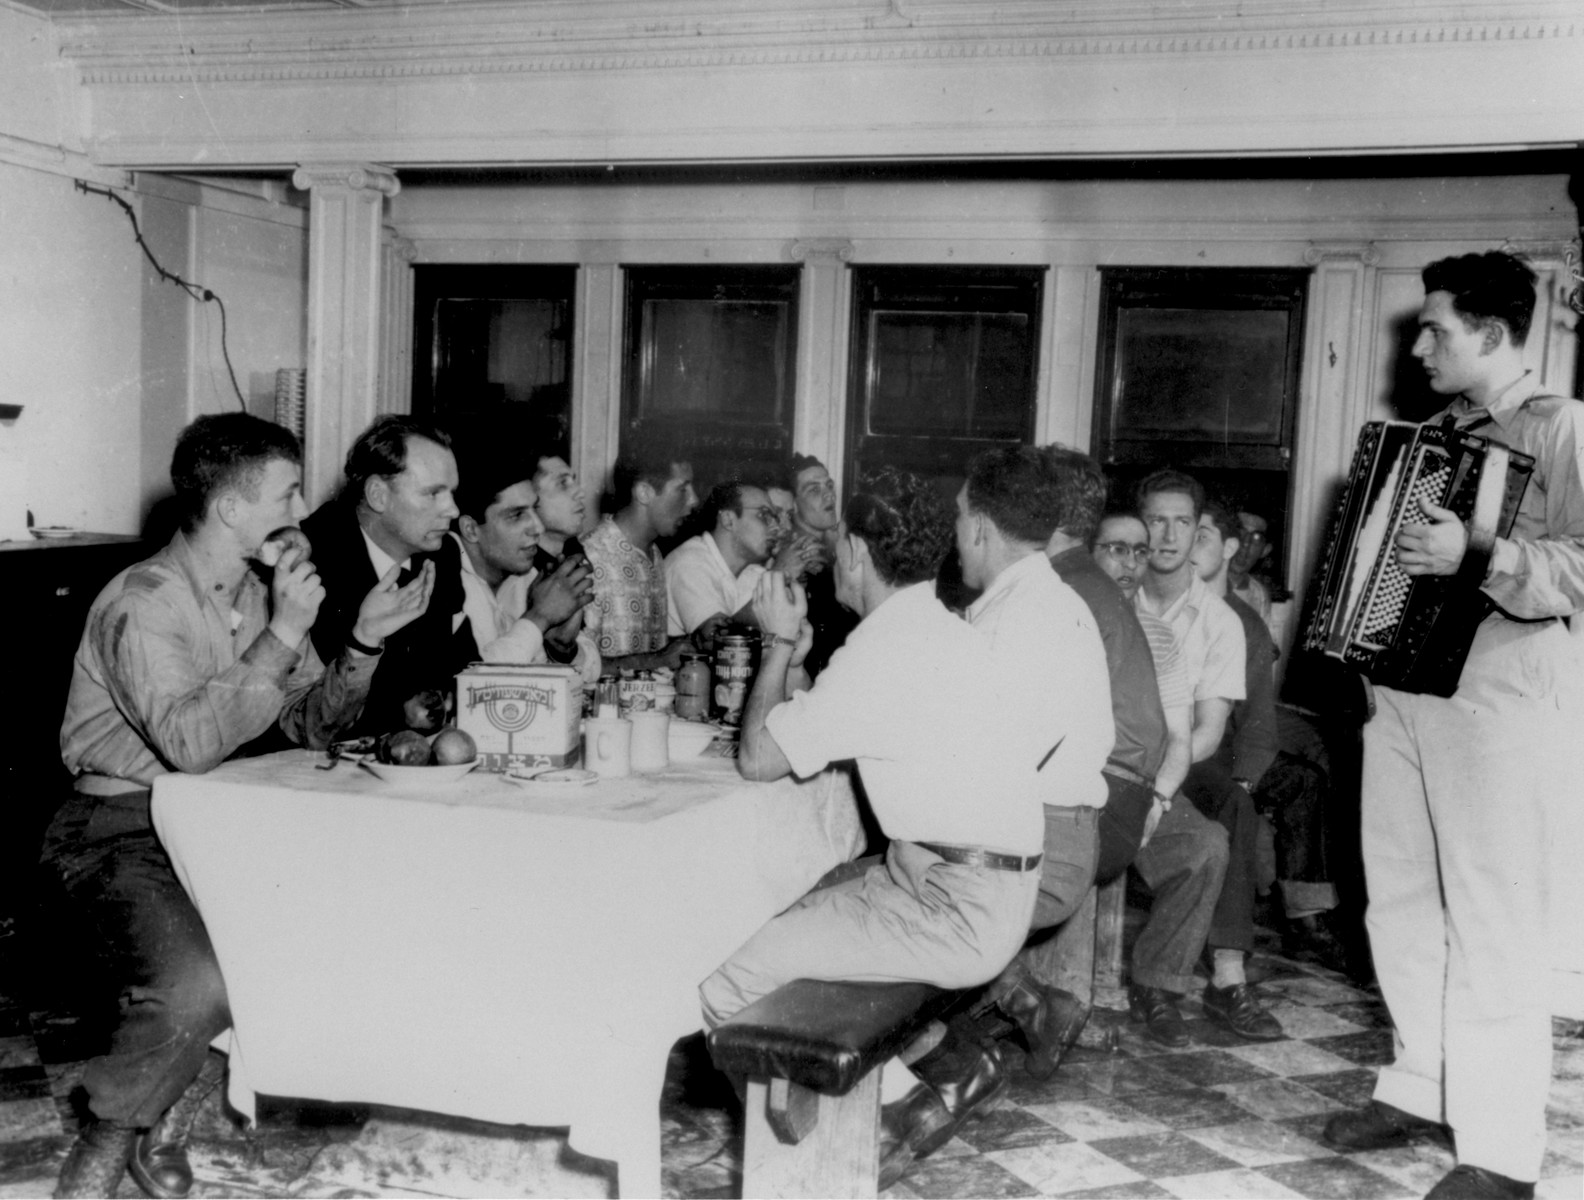 The crew of the Exodus 1947 attends a Passover seder in the ship's mess while en route from the United States to Europe.  The accordian player is William (Vevie) Siegel.  Pictured to the left of the accordian player are Al Naftel and Murray Aronoff.  On the left side of the table, the first four crew members from left to right are: Bentley Forman, John Grauel, Dov Mills and Avraham Siegel.